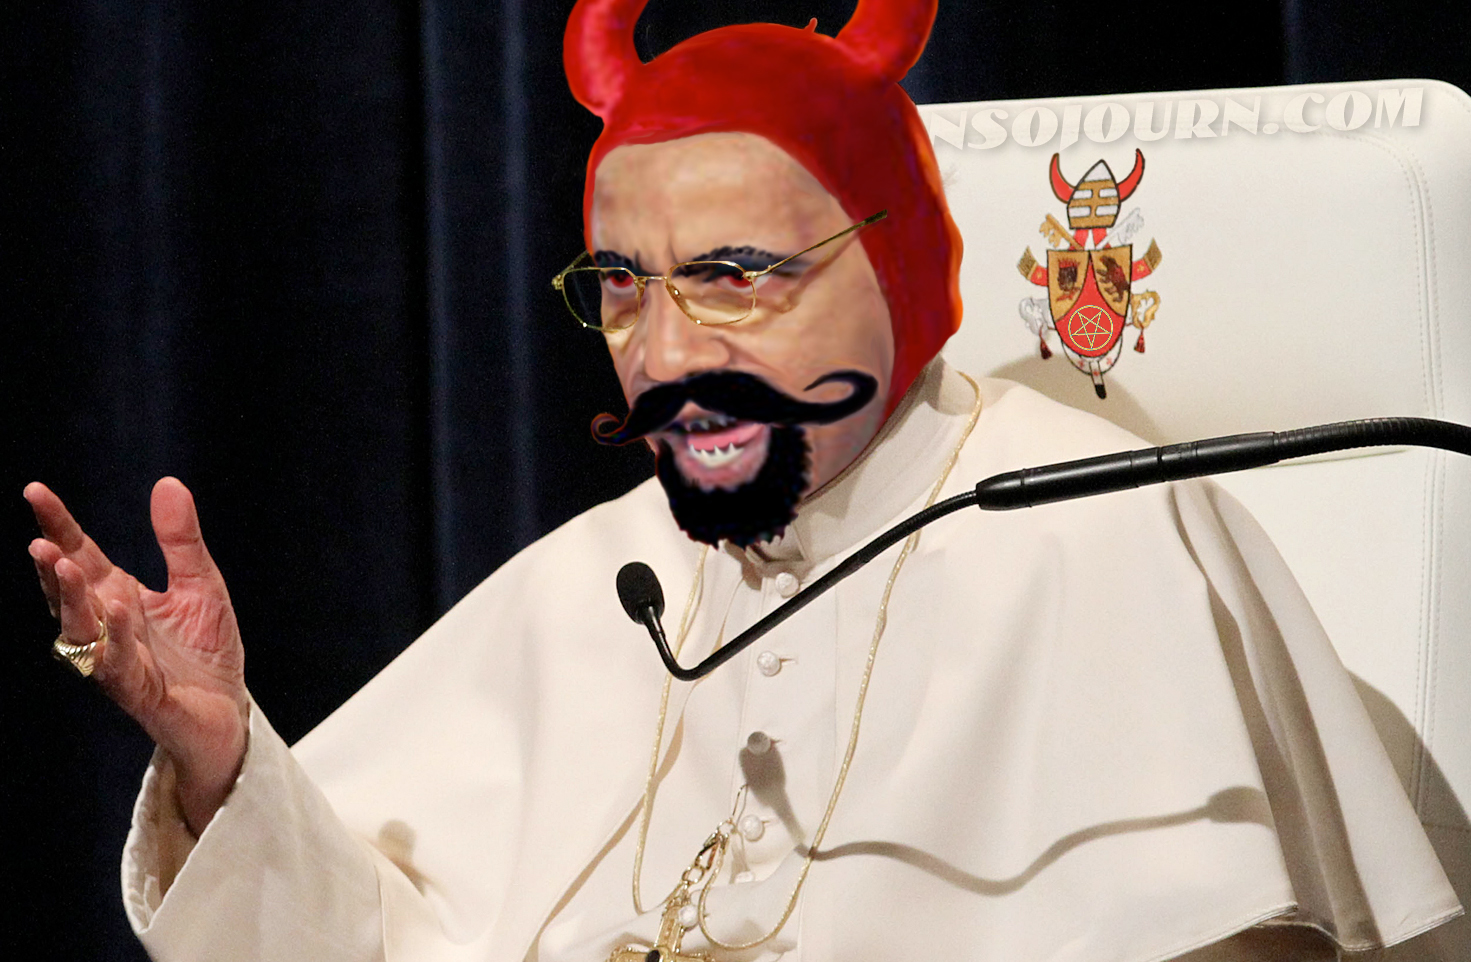 POPE SATAN THE ONE & ONLY